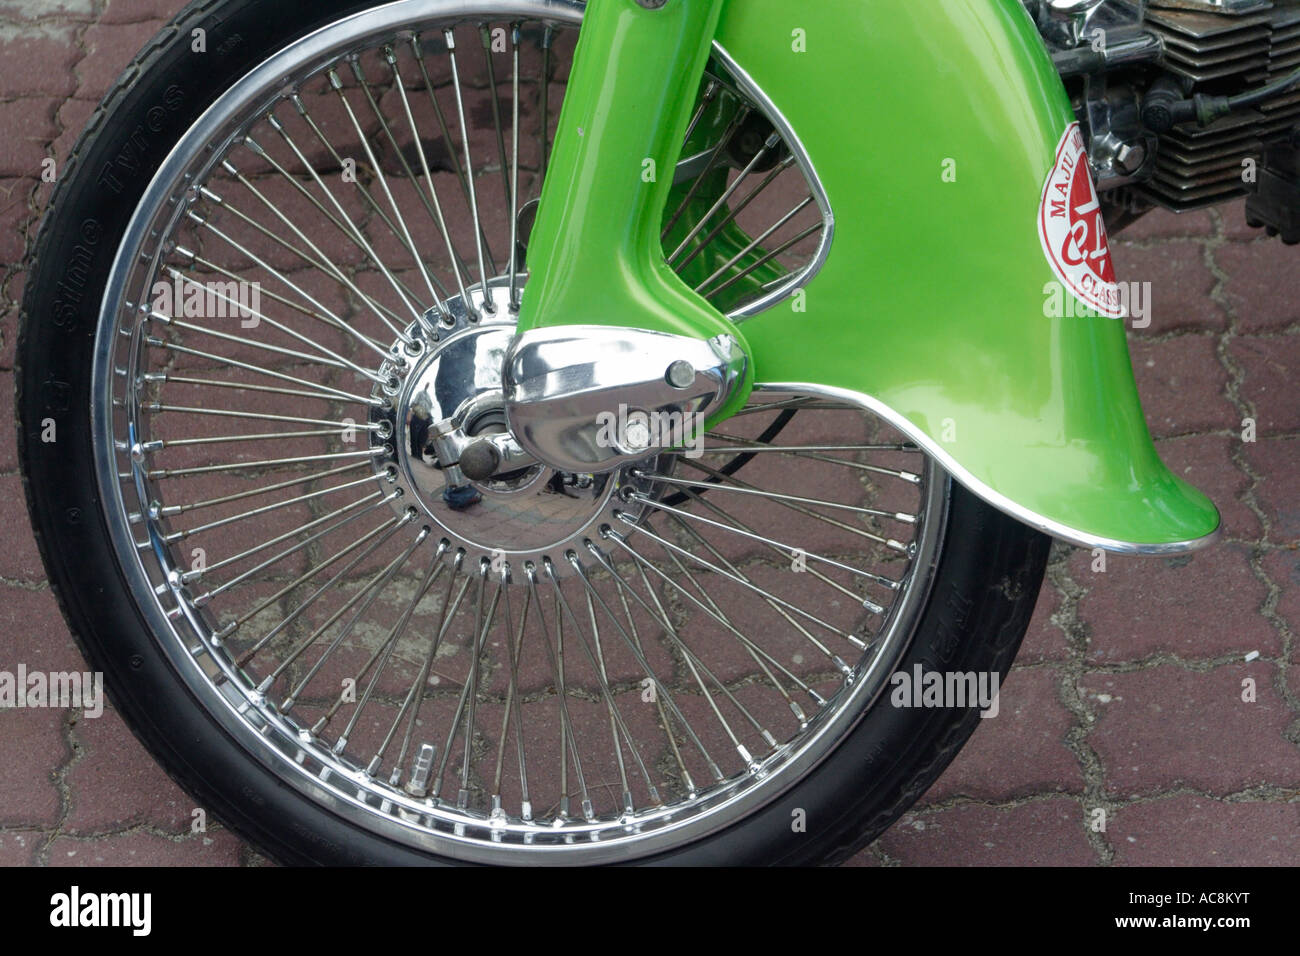 A classic motorcycle with spoked wheel - Stock Image